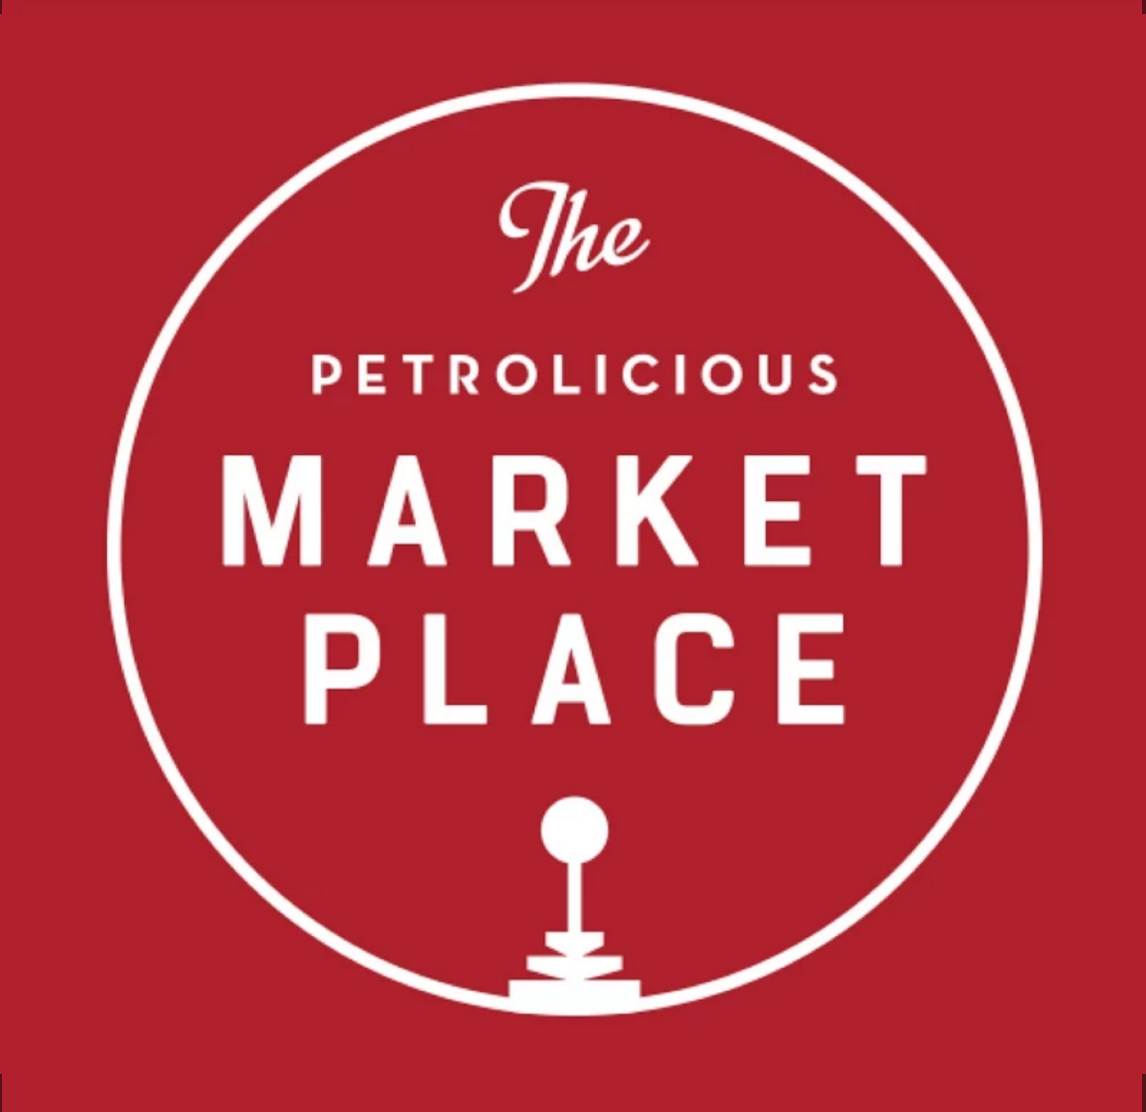 Petrolicious Marketplace